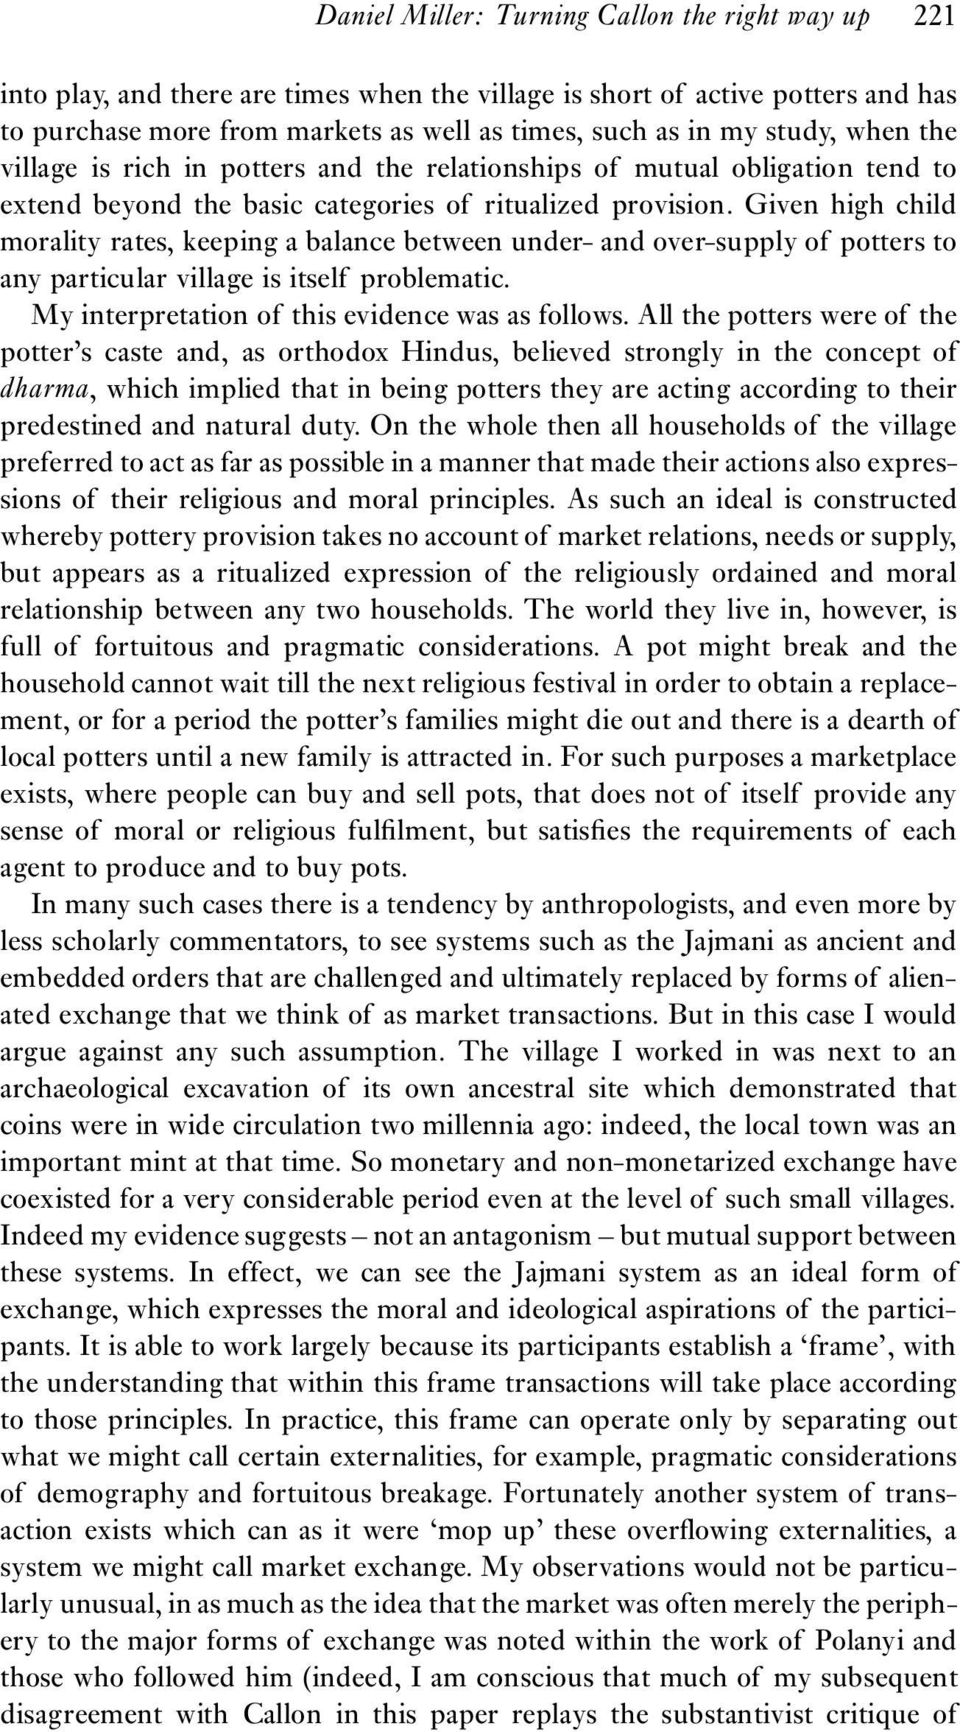 Given high child morality rates, keeping a balance between under- and over-supply of potters to any particular village is itself problematic. My interpretation of this evidence was as follows.